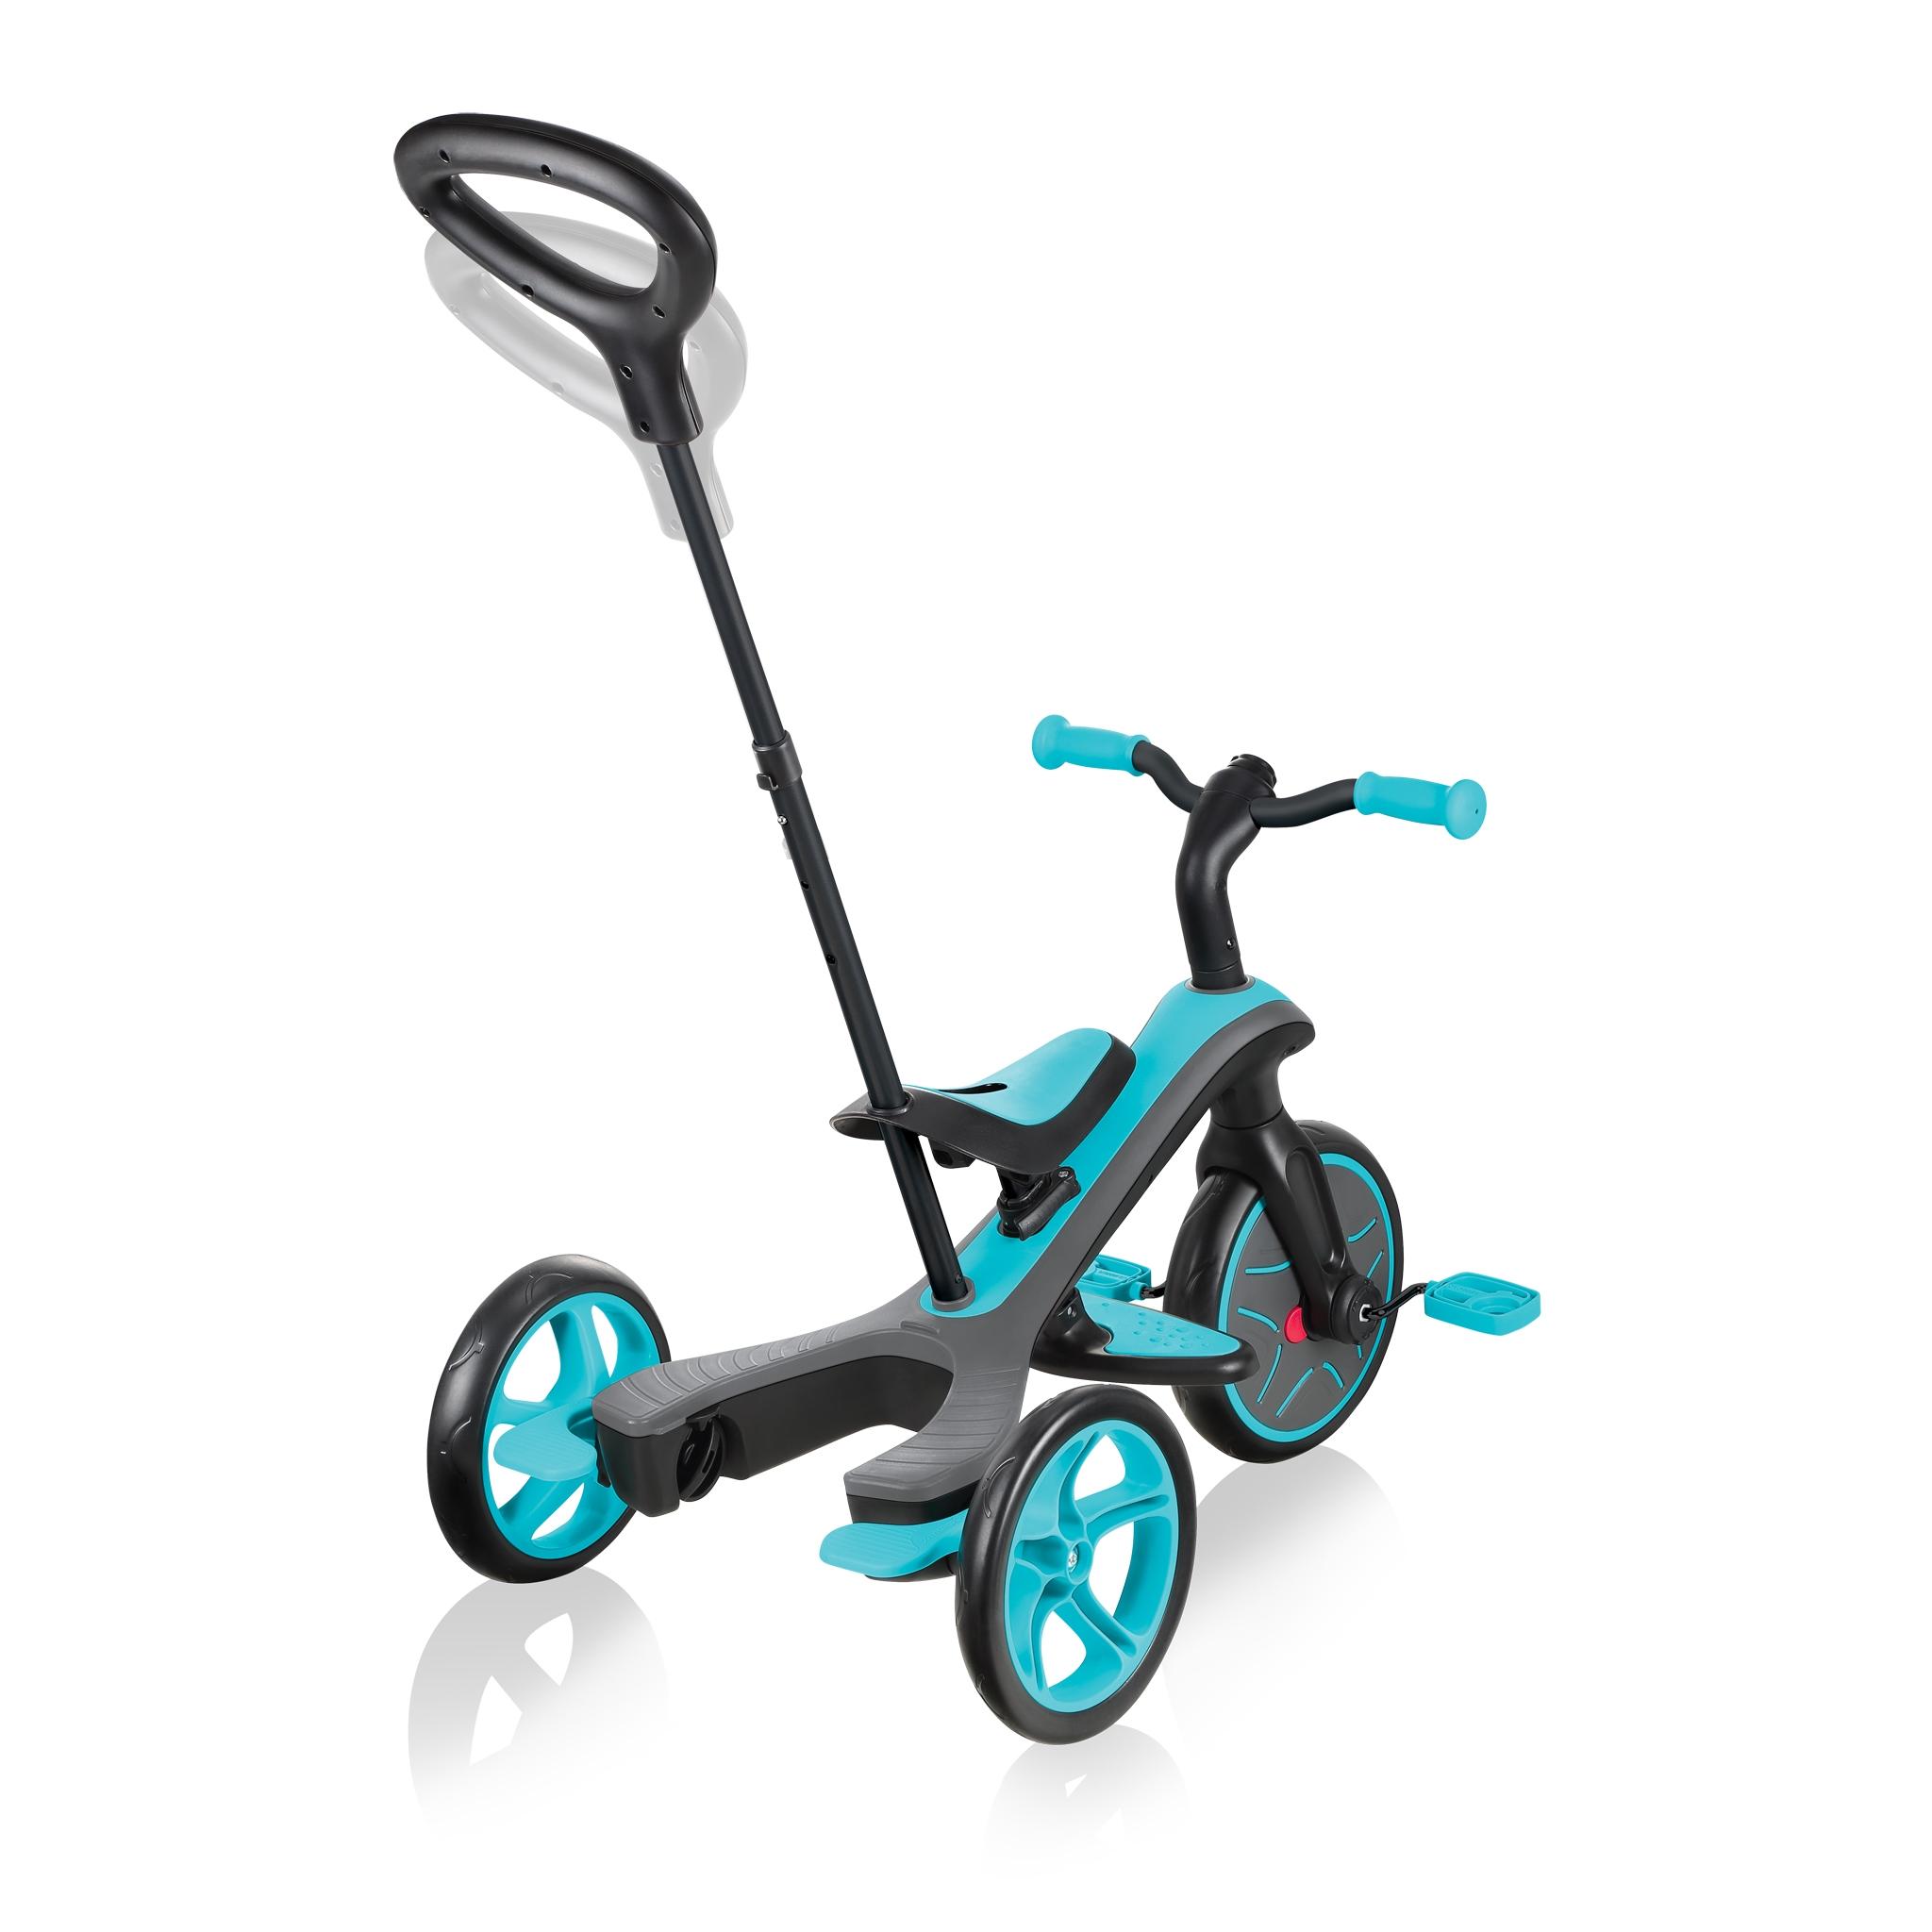 Globber-EXPLORER-TRIKE-4in1-all-in-one-baby-tricycle-and-kids-balance-bike-with-2-height-adjustable-parent-handle_teal